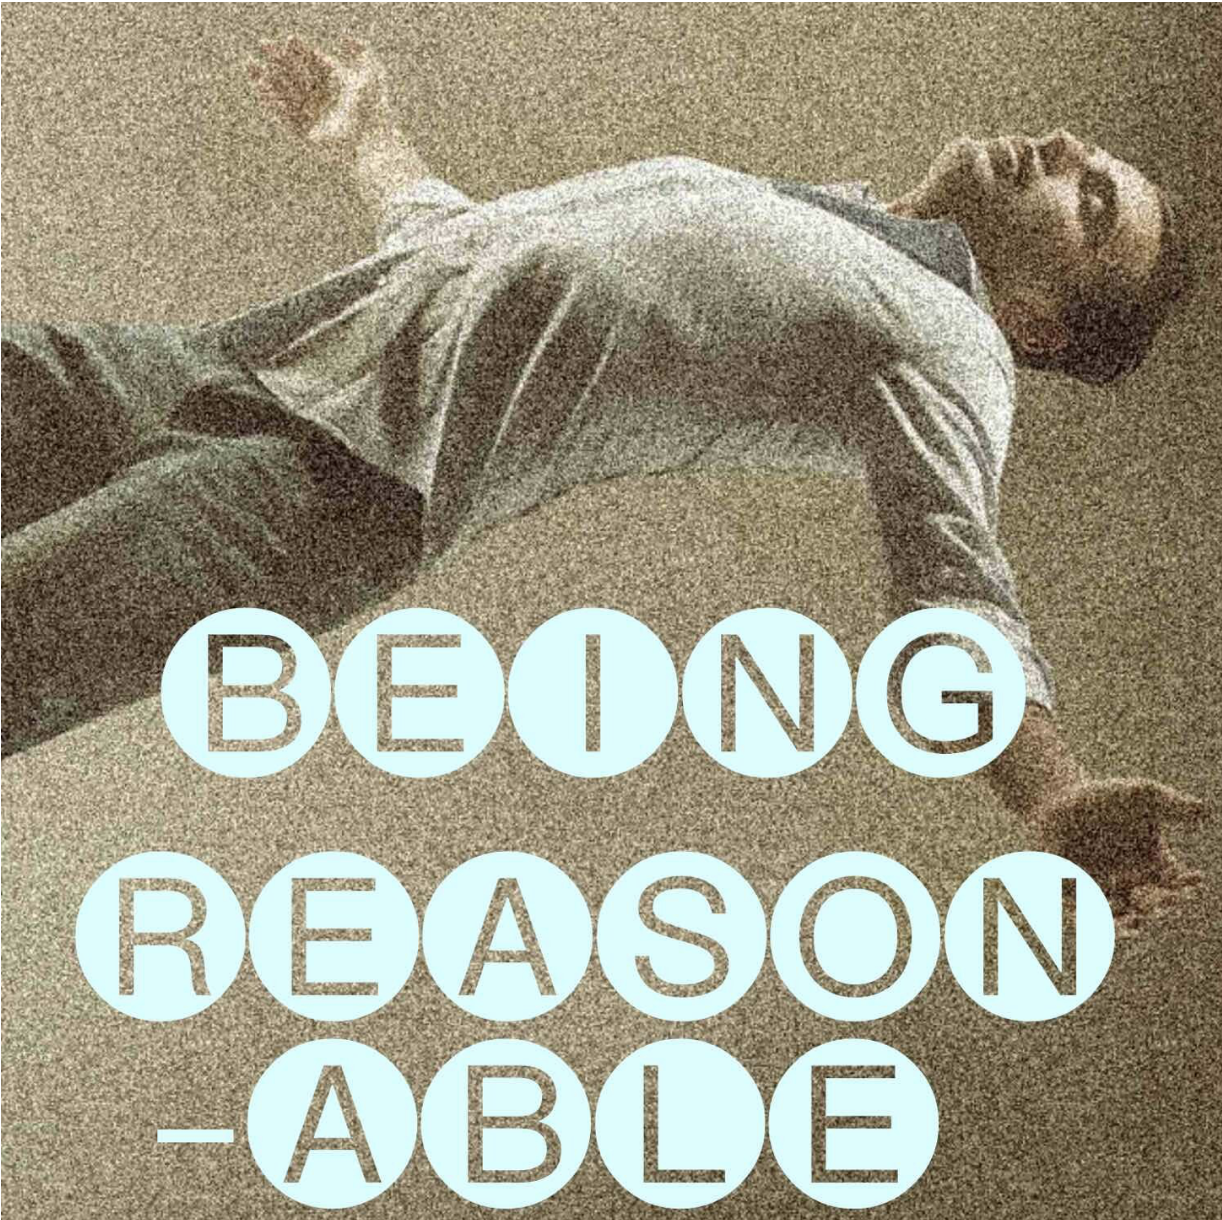 Caption: Being Reasonable